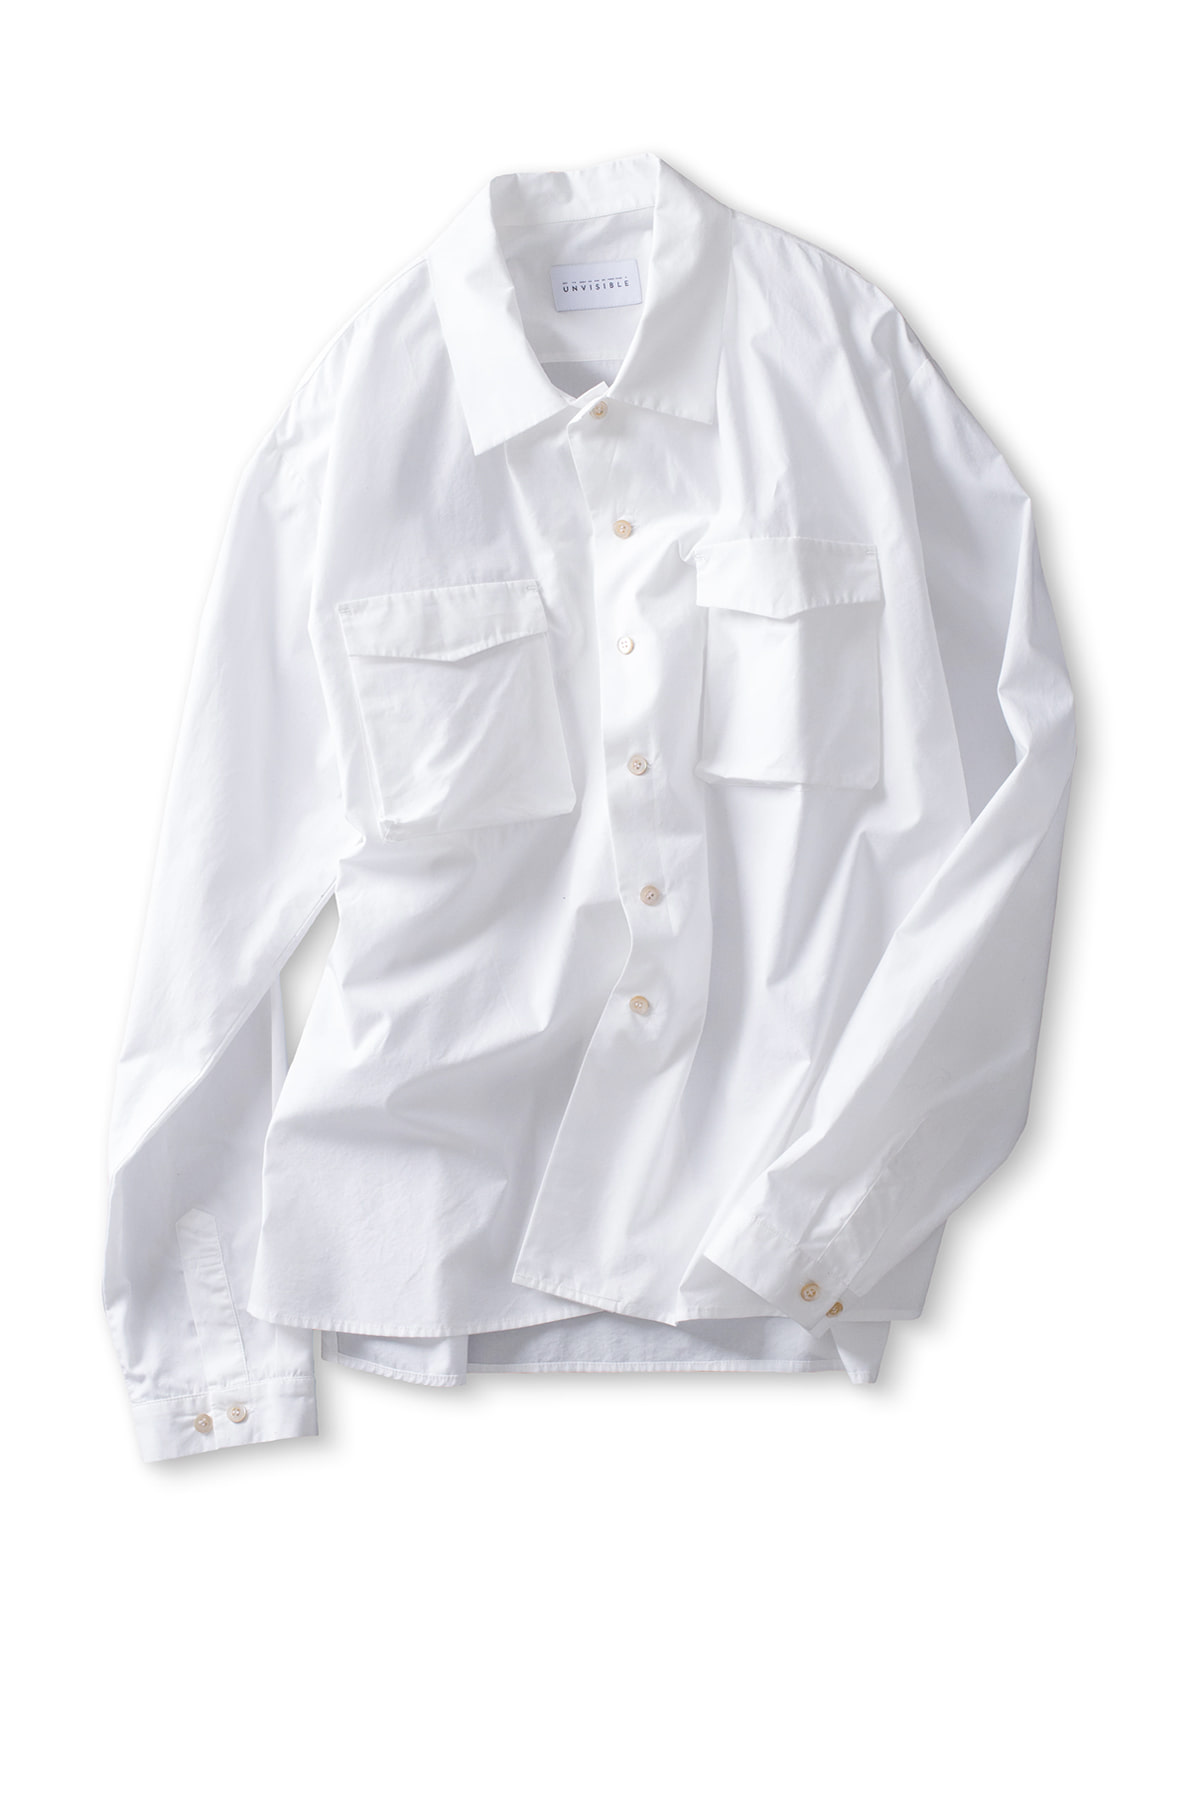 UNVISIBLE : Sunday Shirt (White)